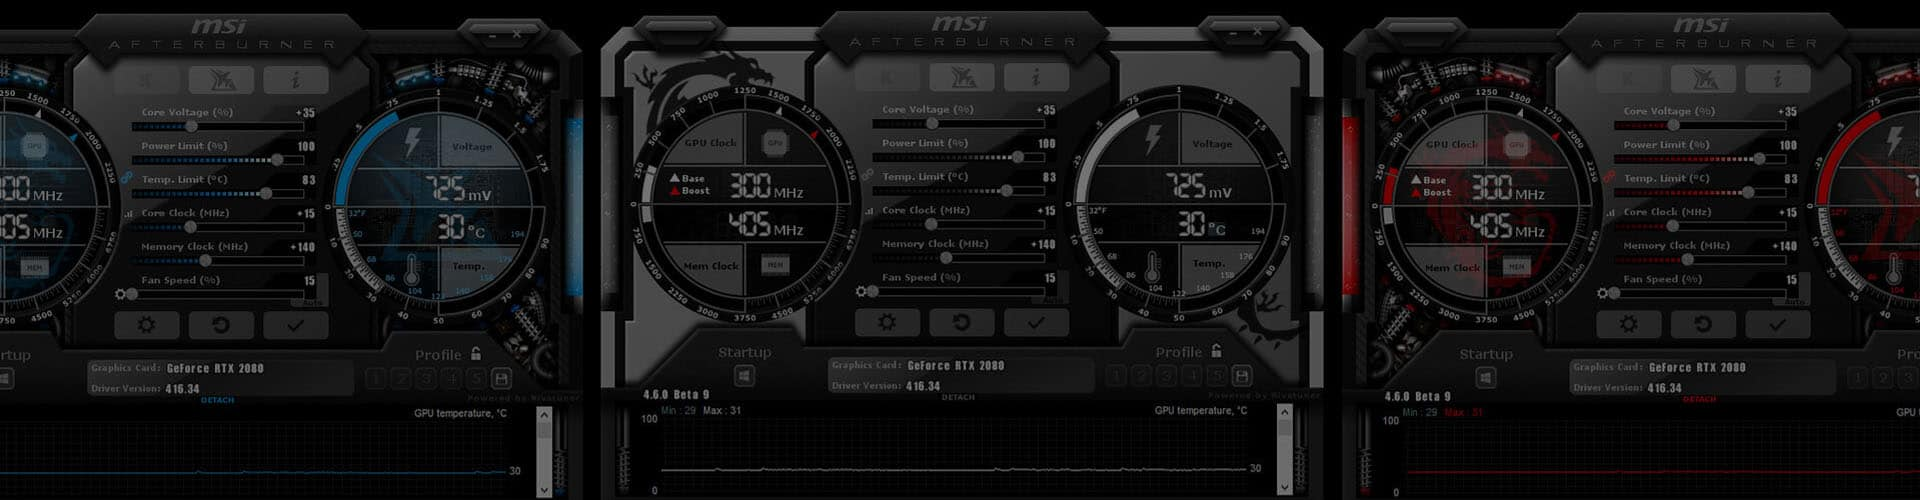 MSI Afterburner – How To Download And Use It